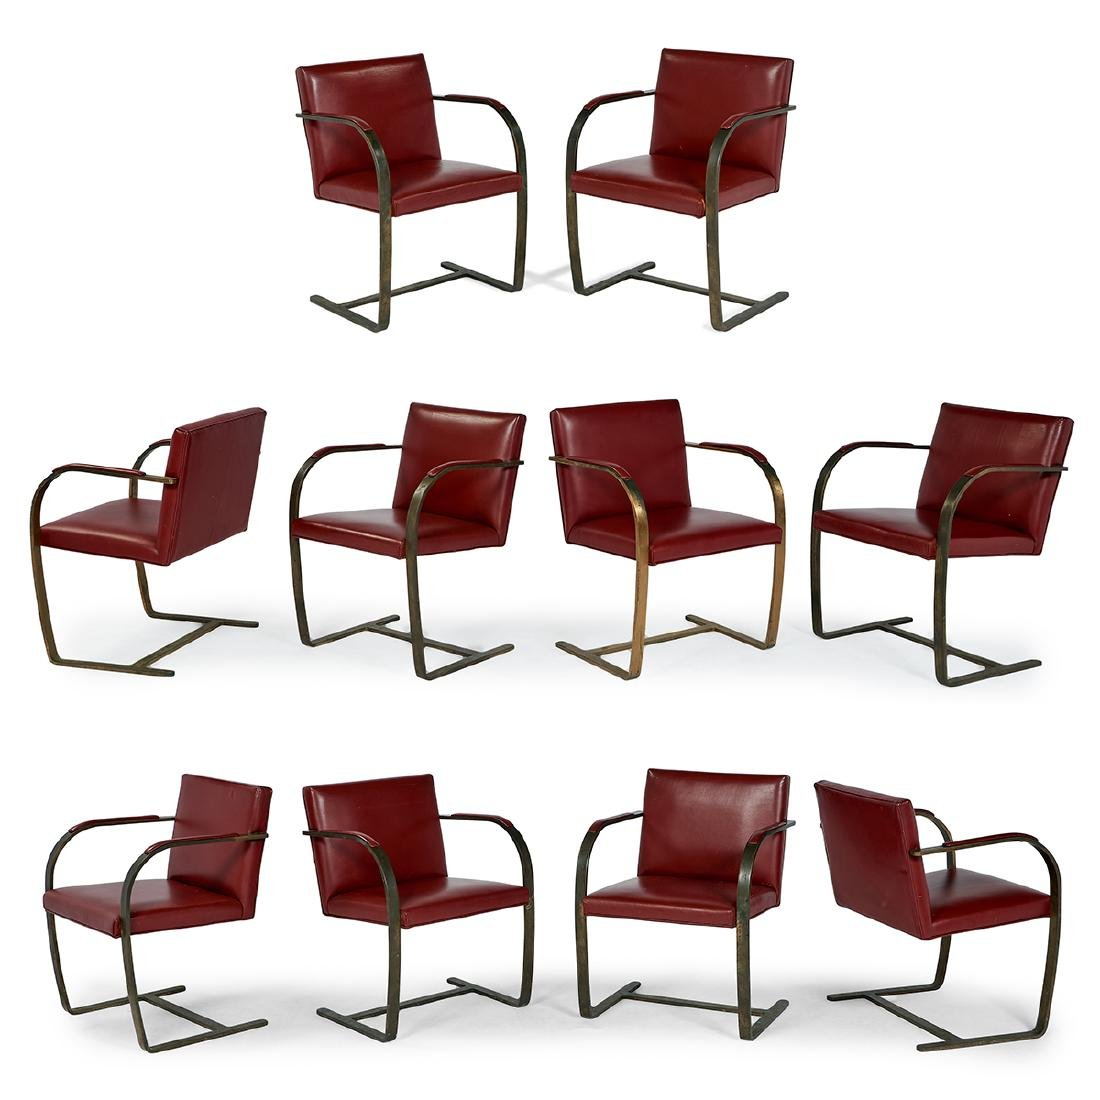 Mies van der Rohe for Knoll BRNO chairs, 10